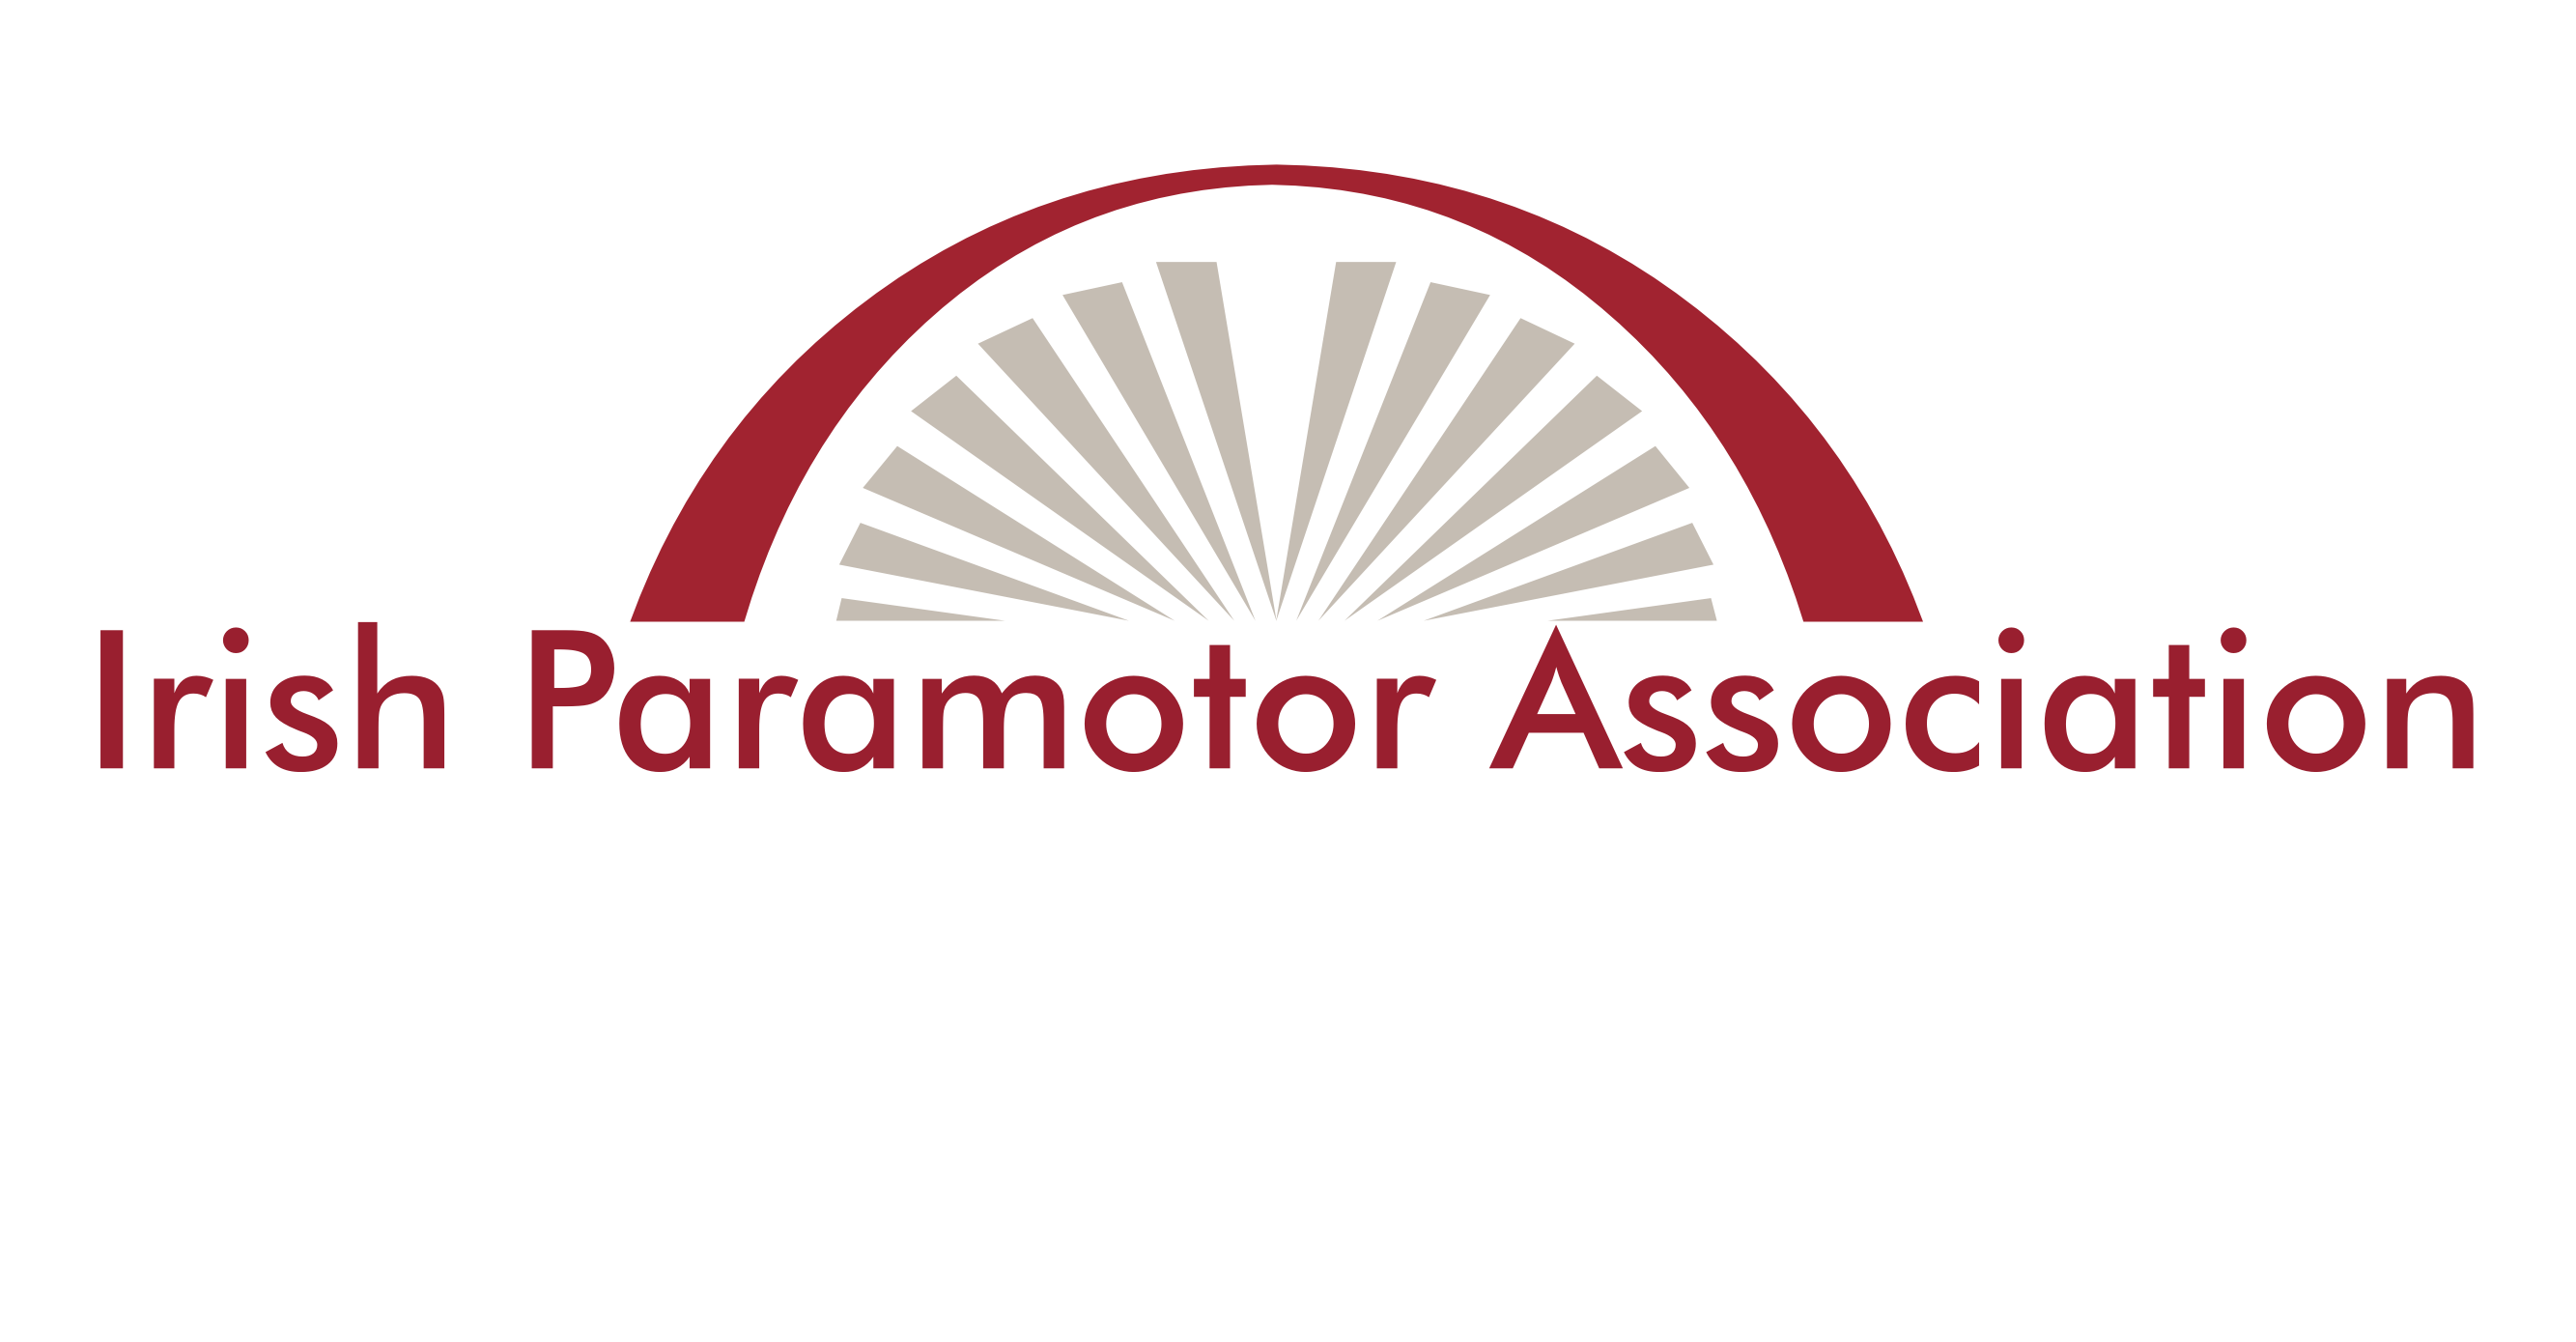 Irish Paramotor Association